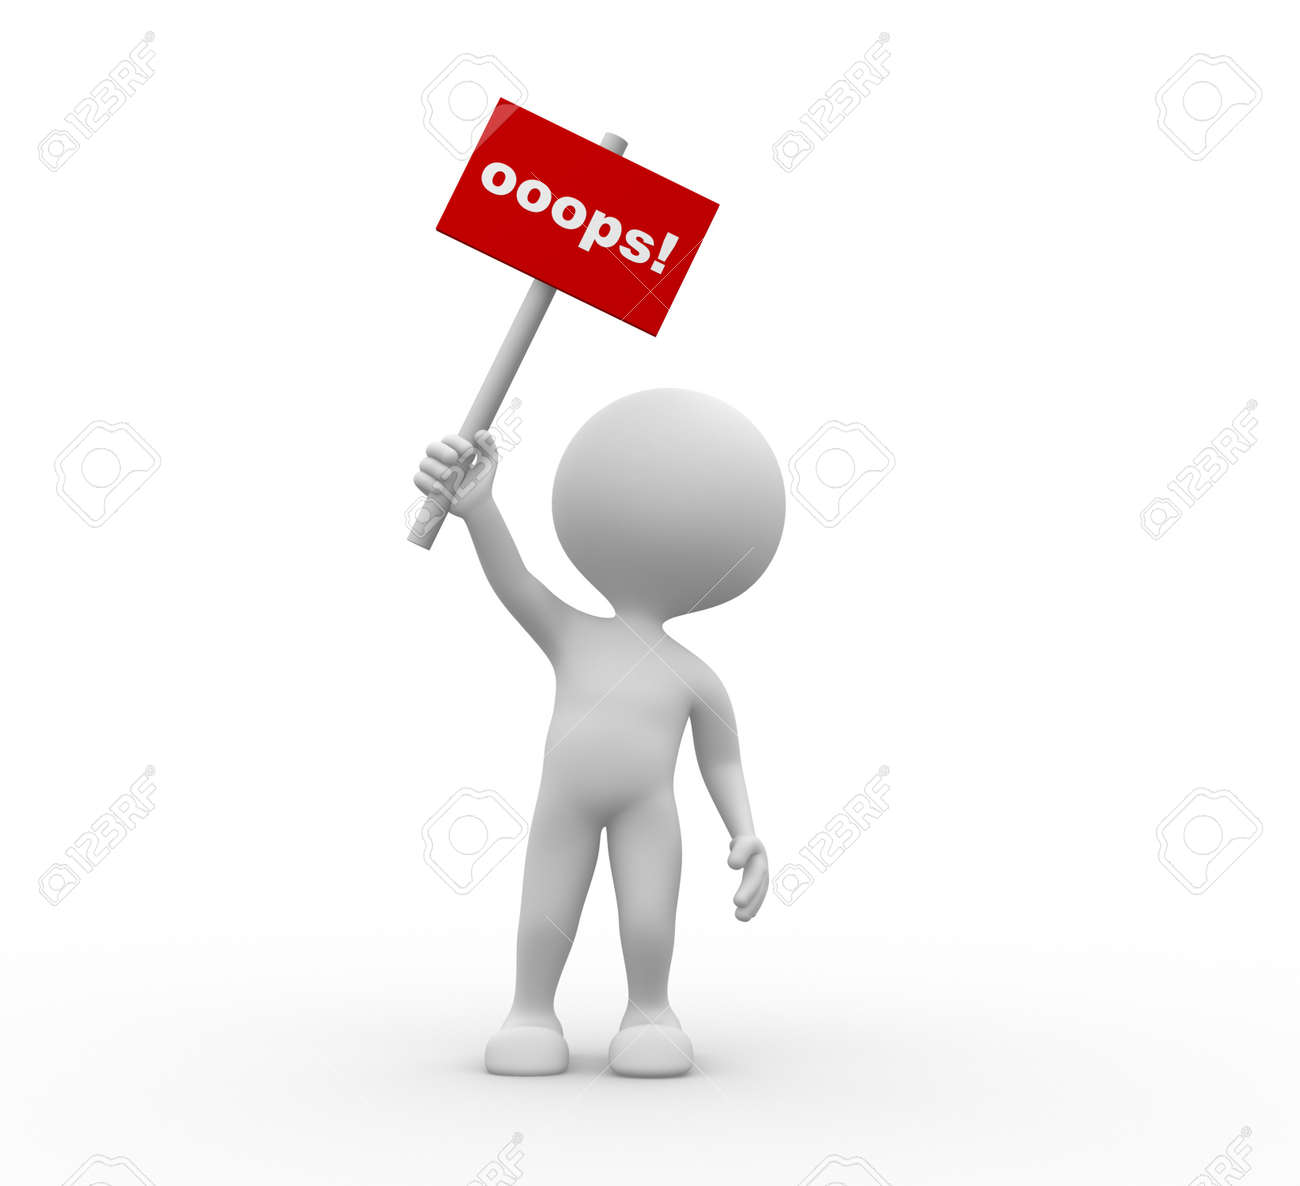 3d people - man, person with a banner  Oops Stock Photo - 21358974